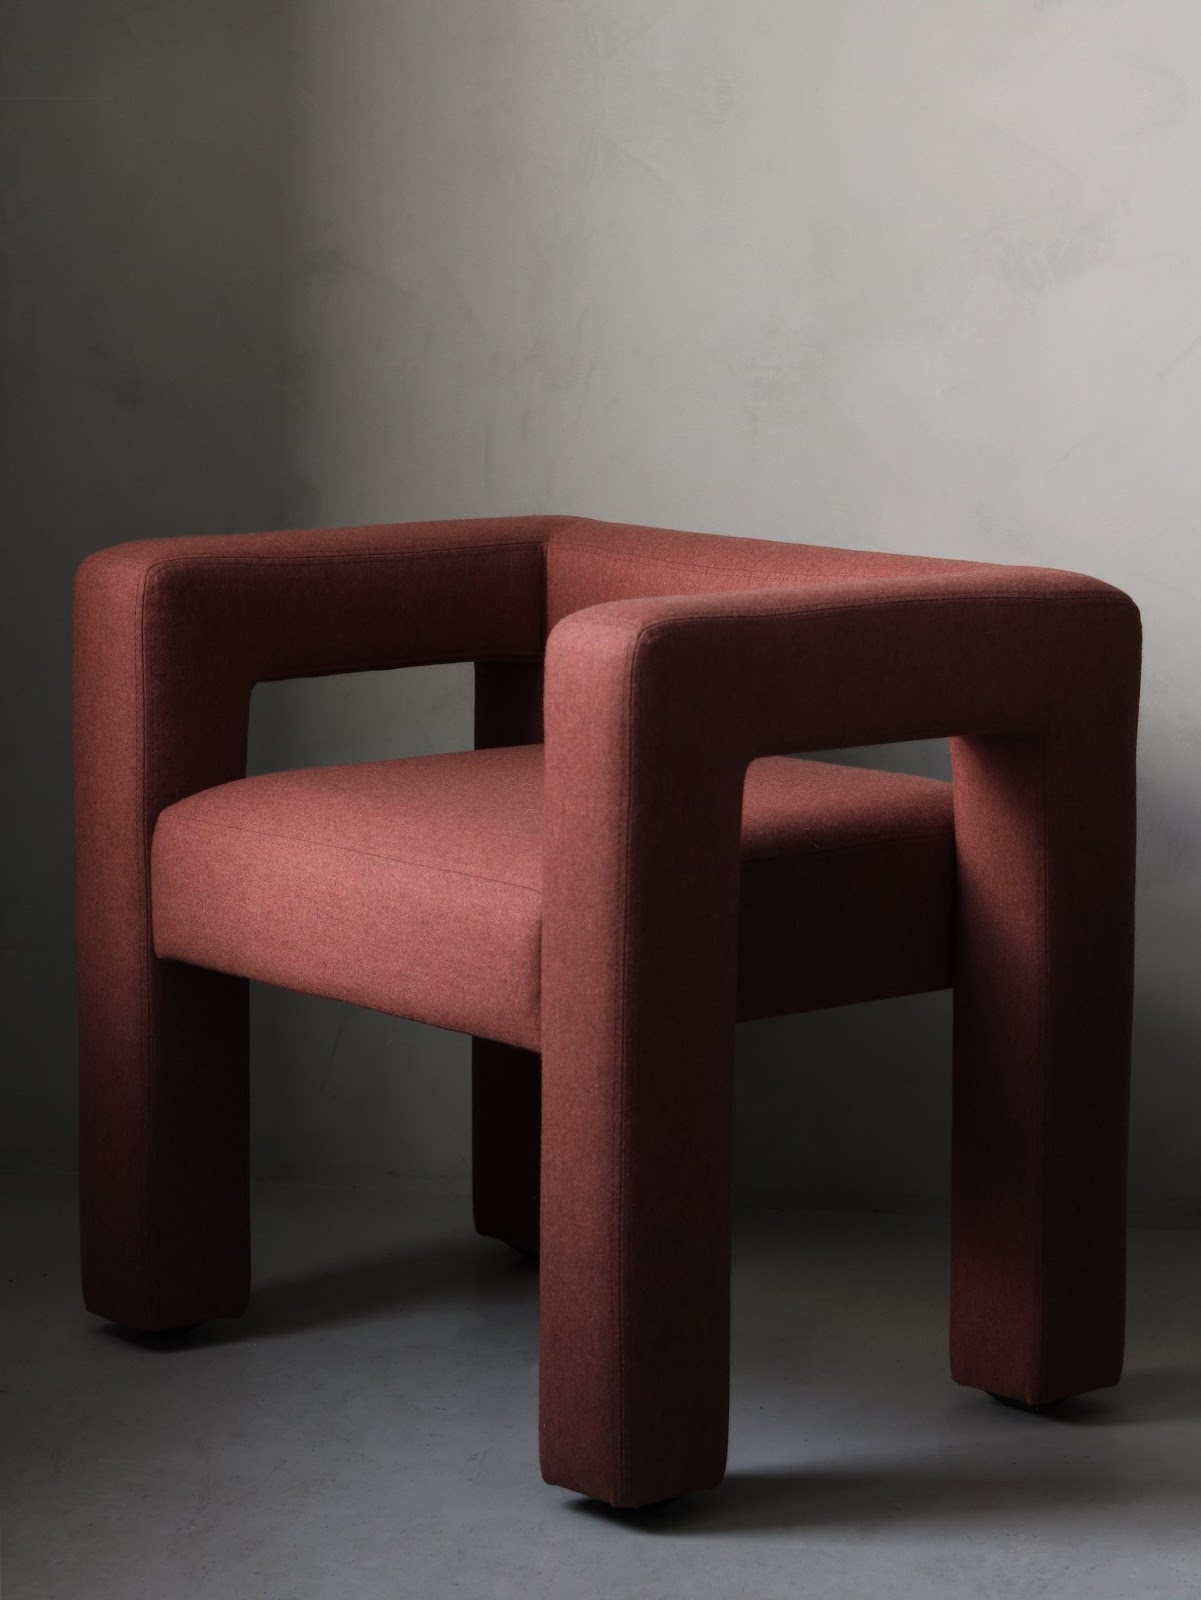 Faina's Toptun chair is perfect geometry